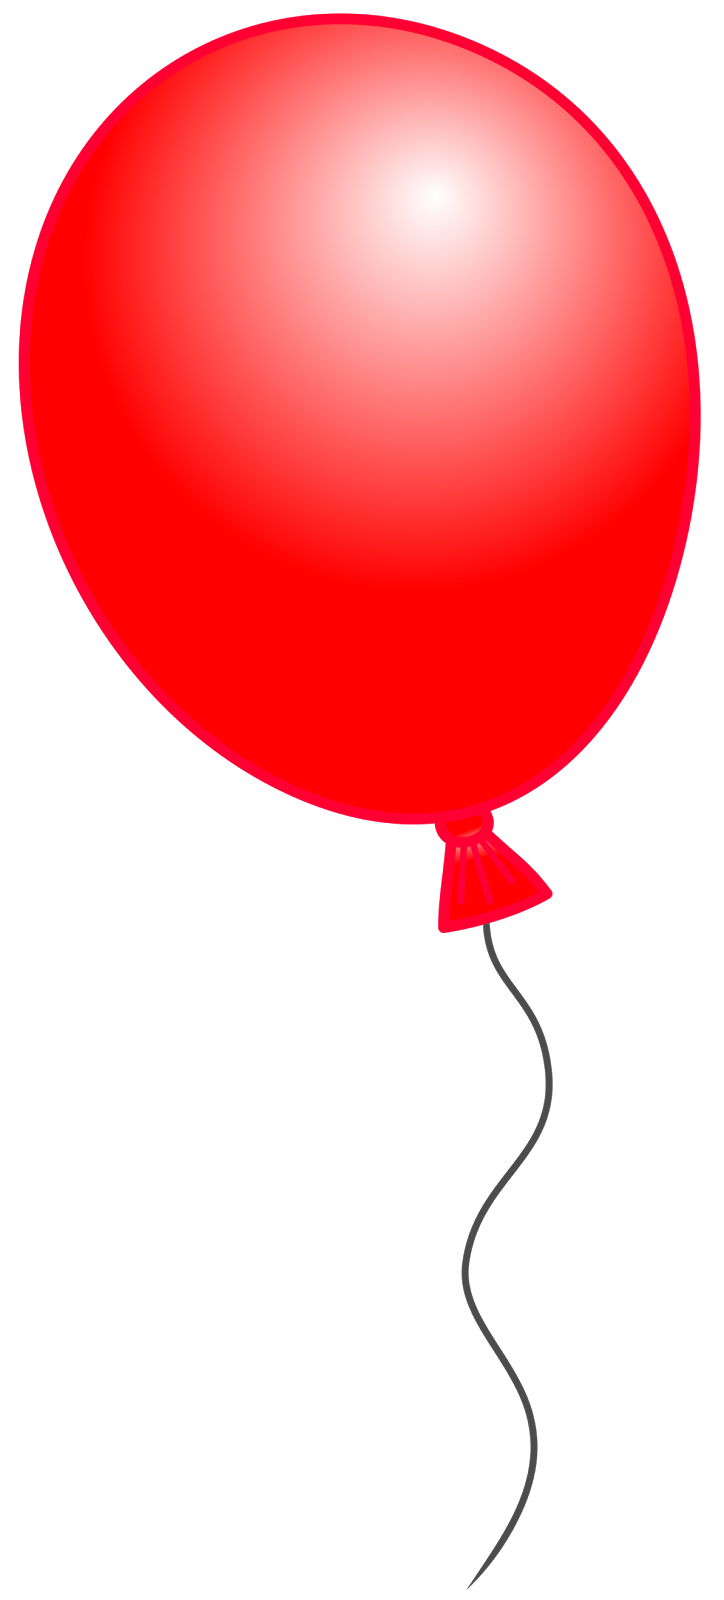 Red Balloon Clipart - Clipart Kid